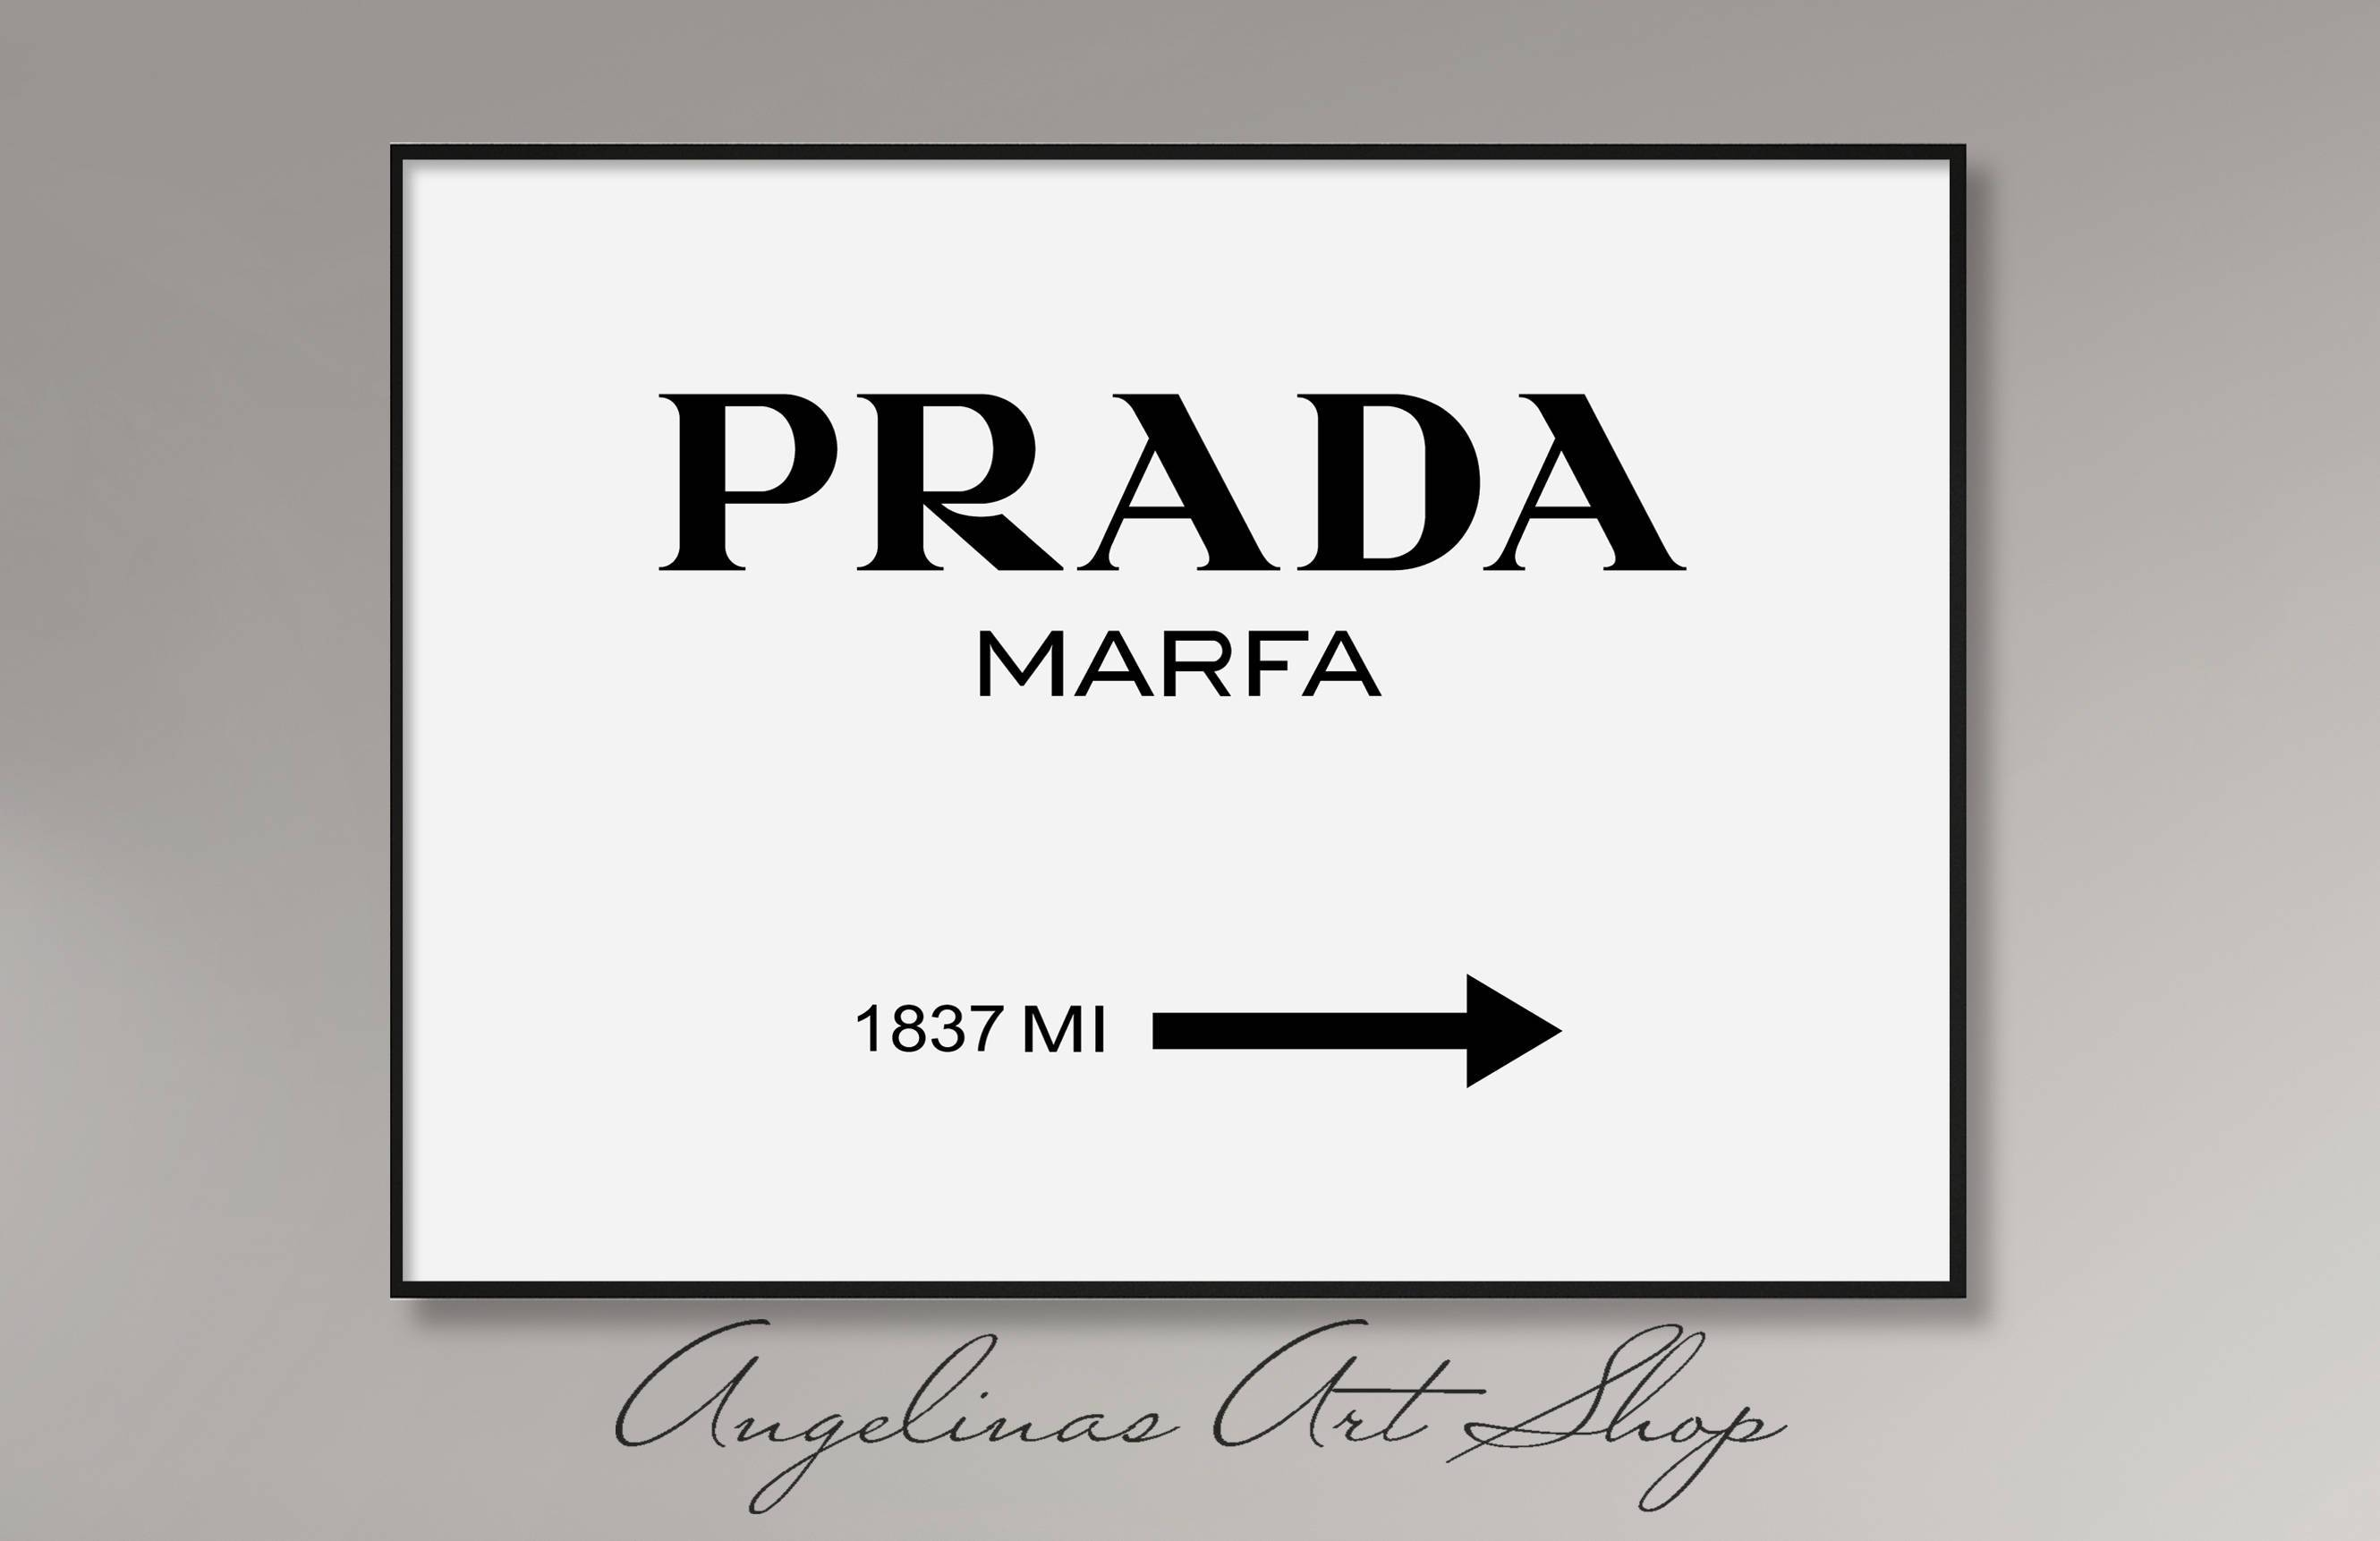 Prada Marfa Wall Art Fashion Print Fashion Logo Fashion Inside 2018 Prada Wall Art (View 3 of 25)